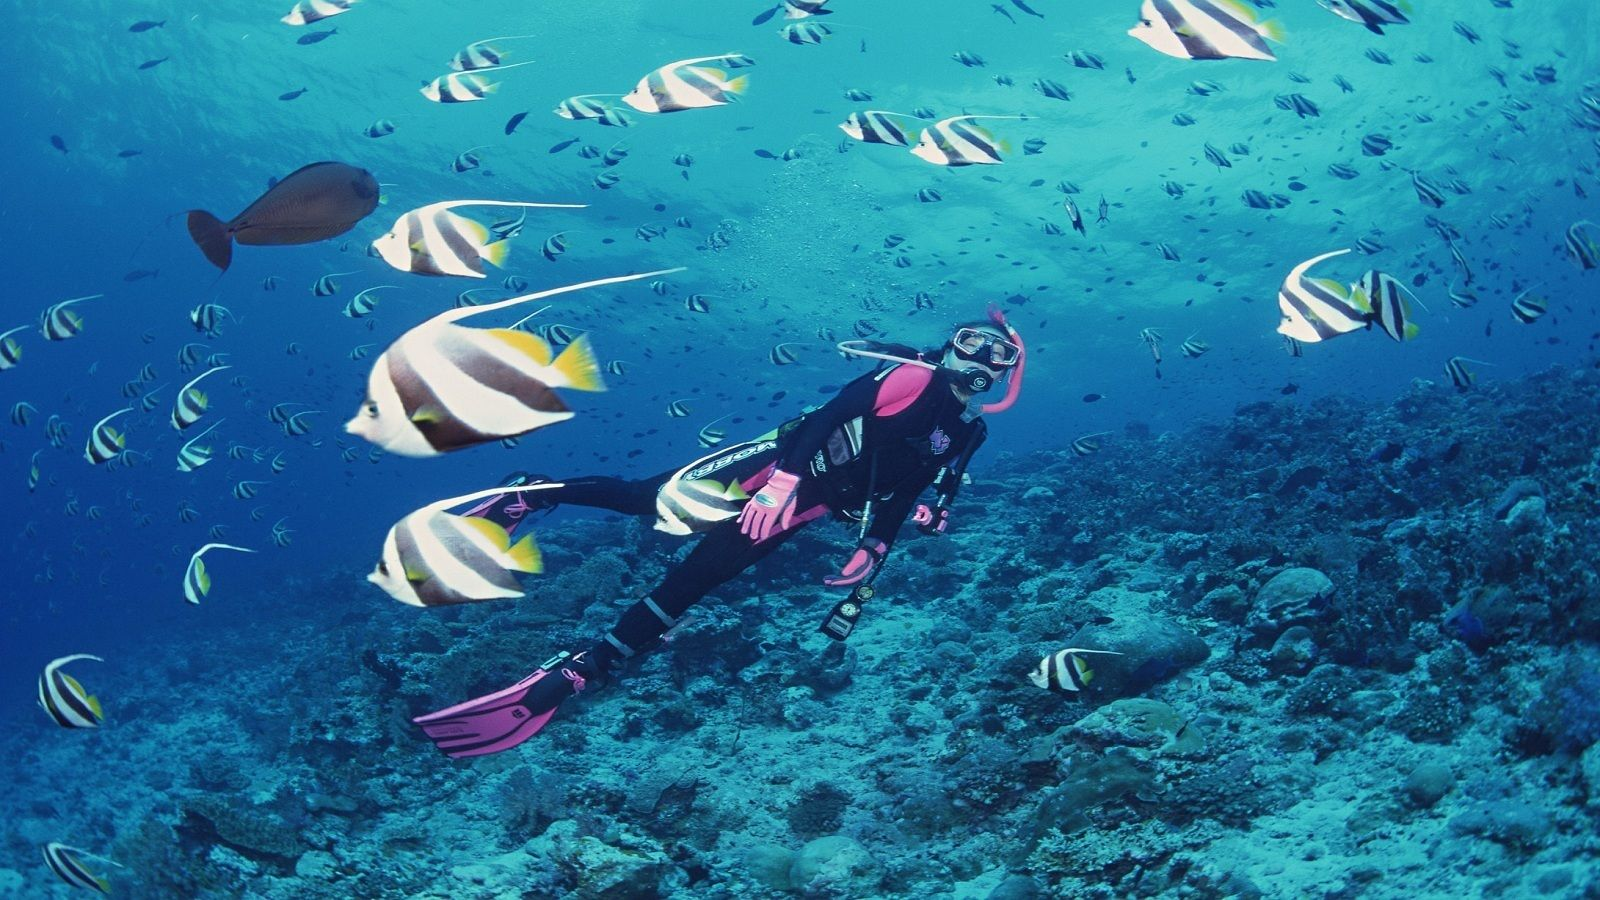 Diver surrounded by fish in Nha Trang